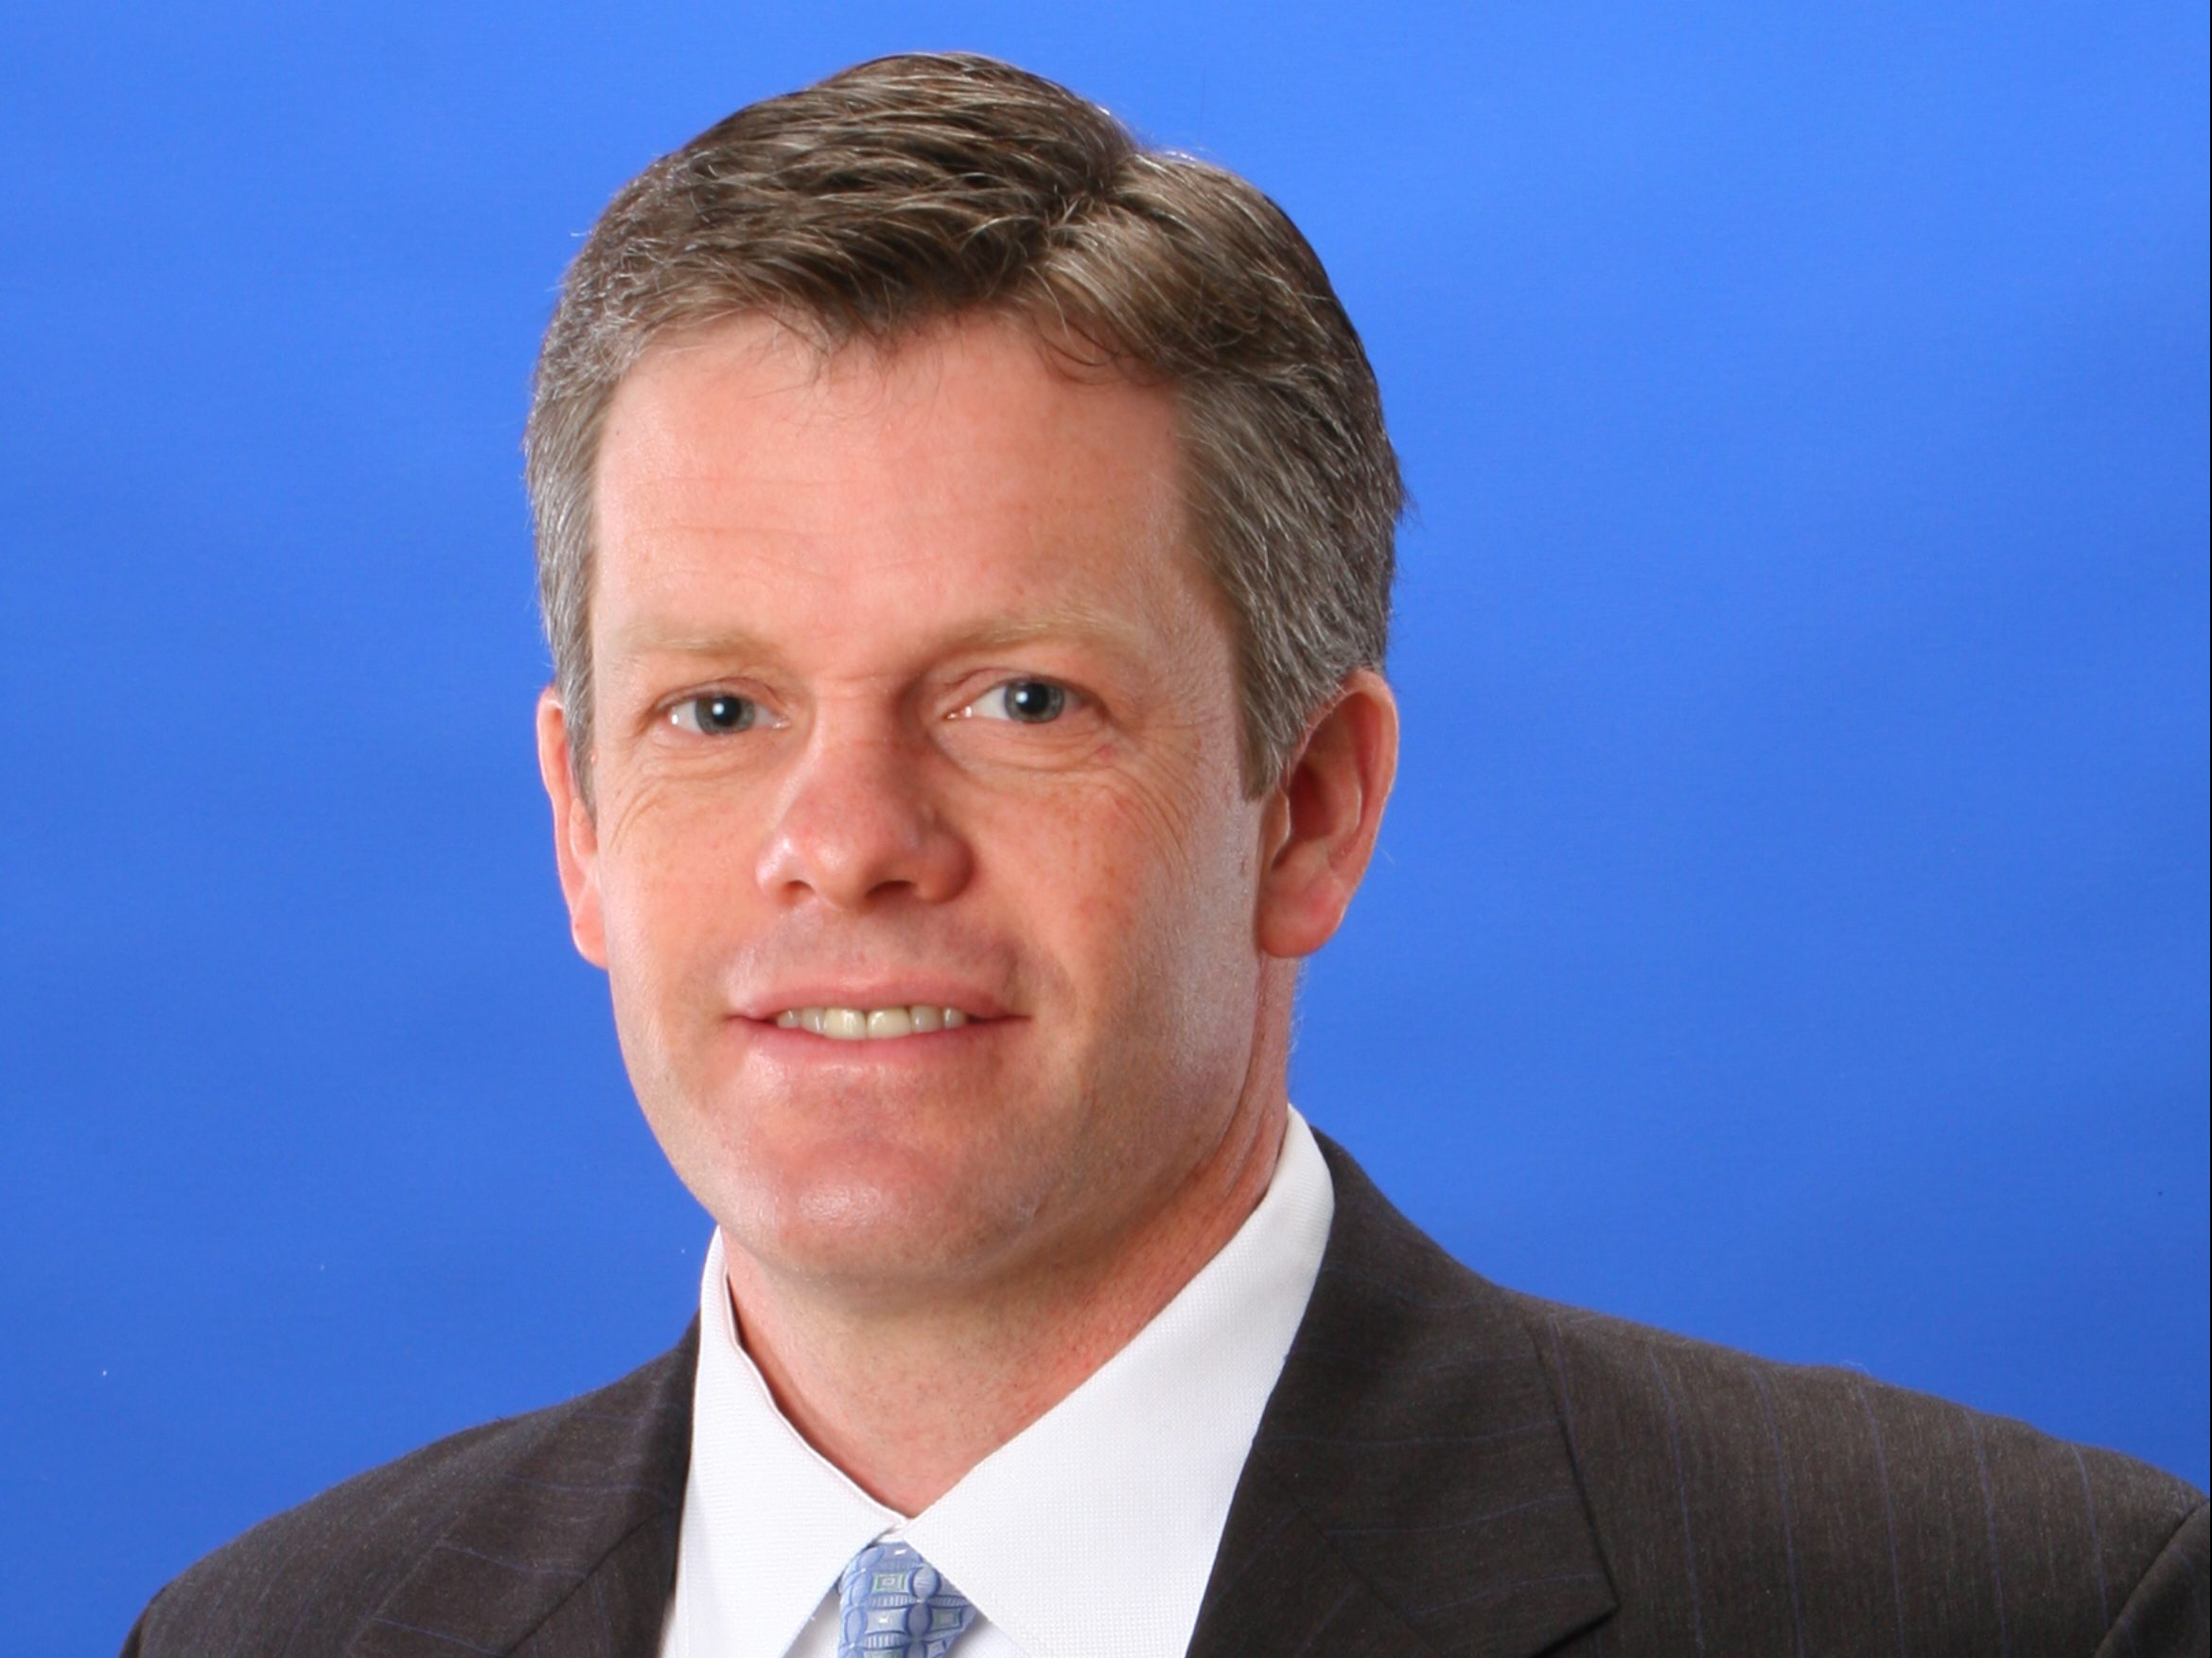 Bob Geiger, national client manager and principal, Partner Engineering & Science